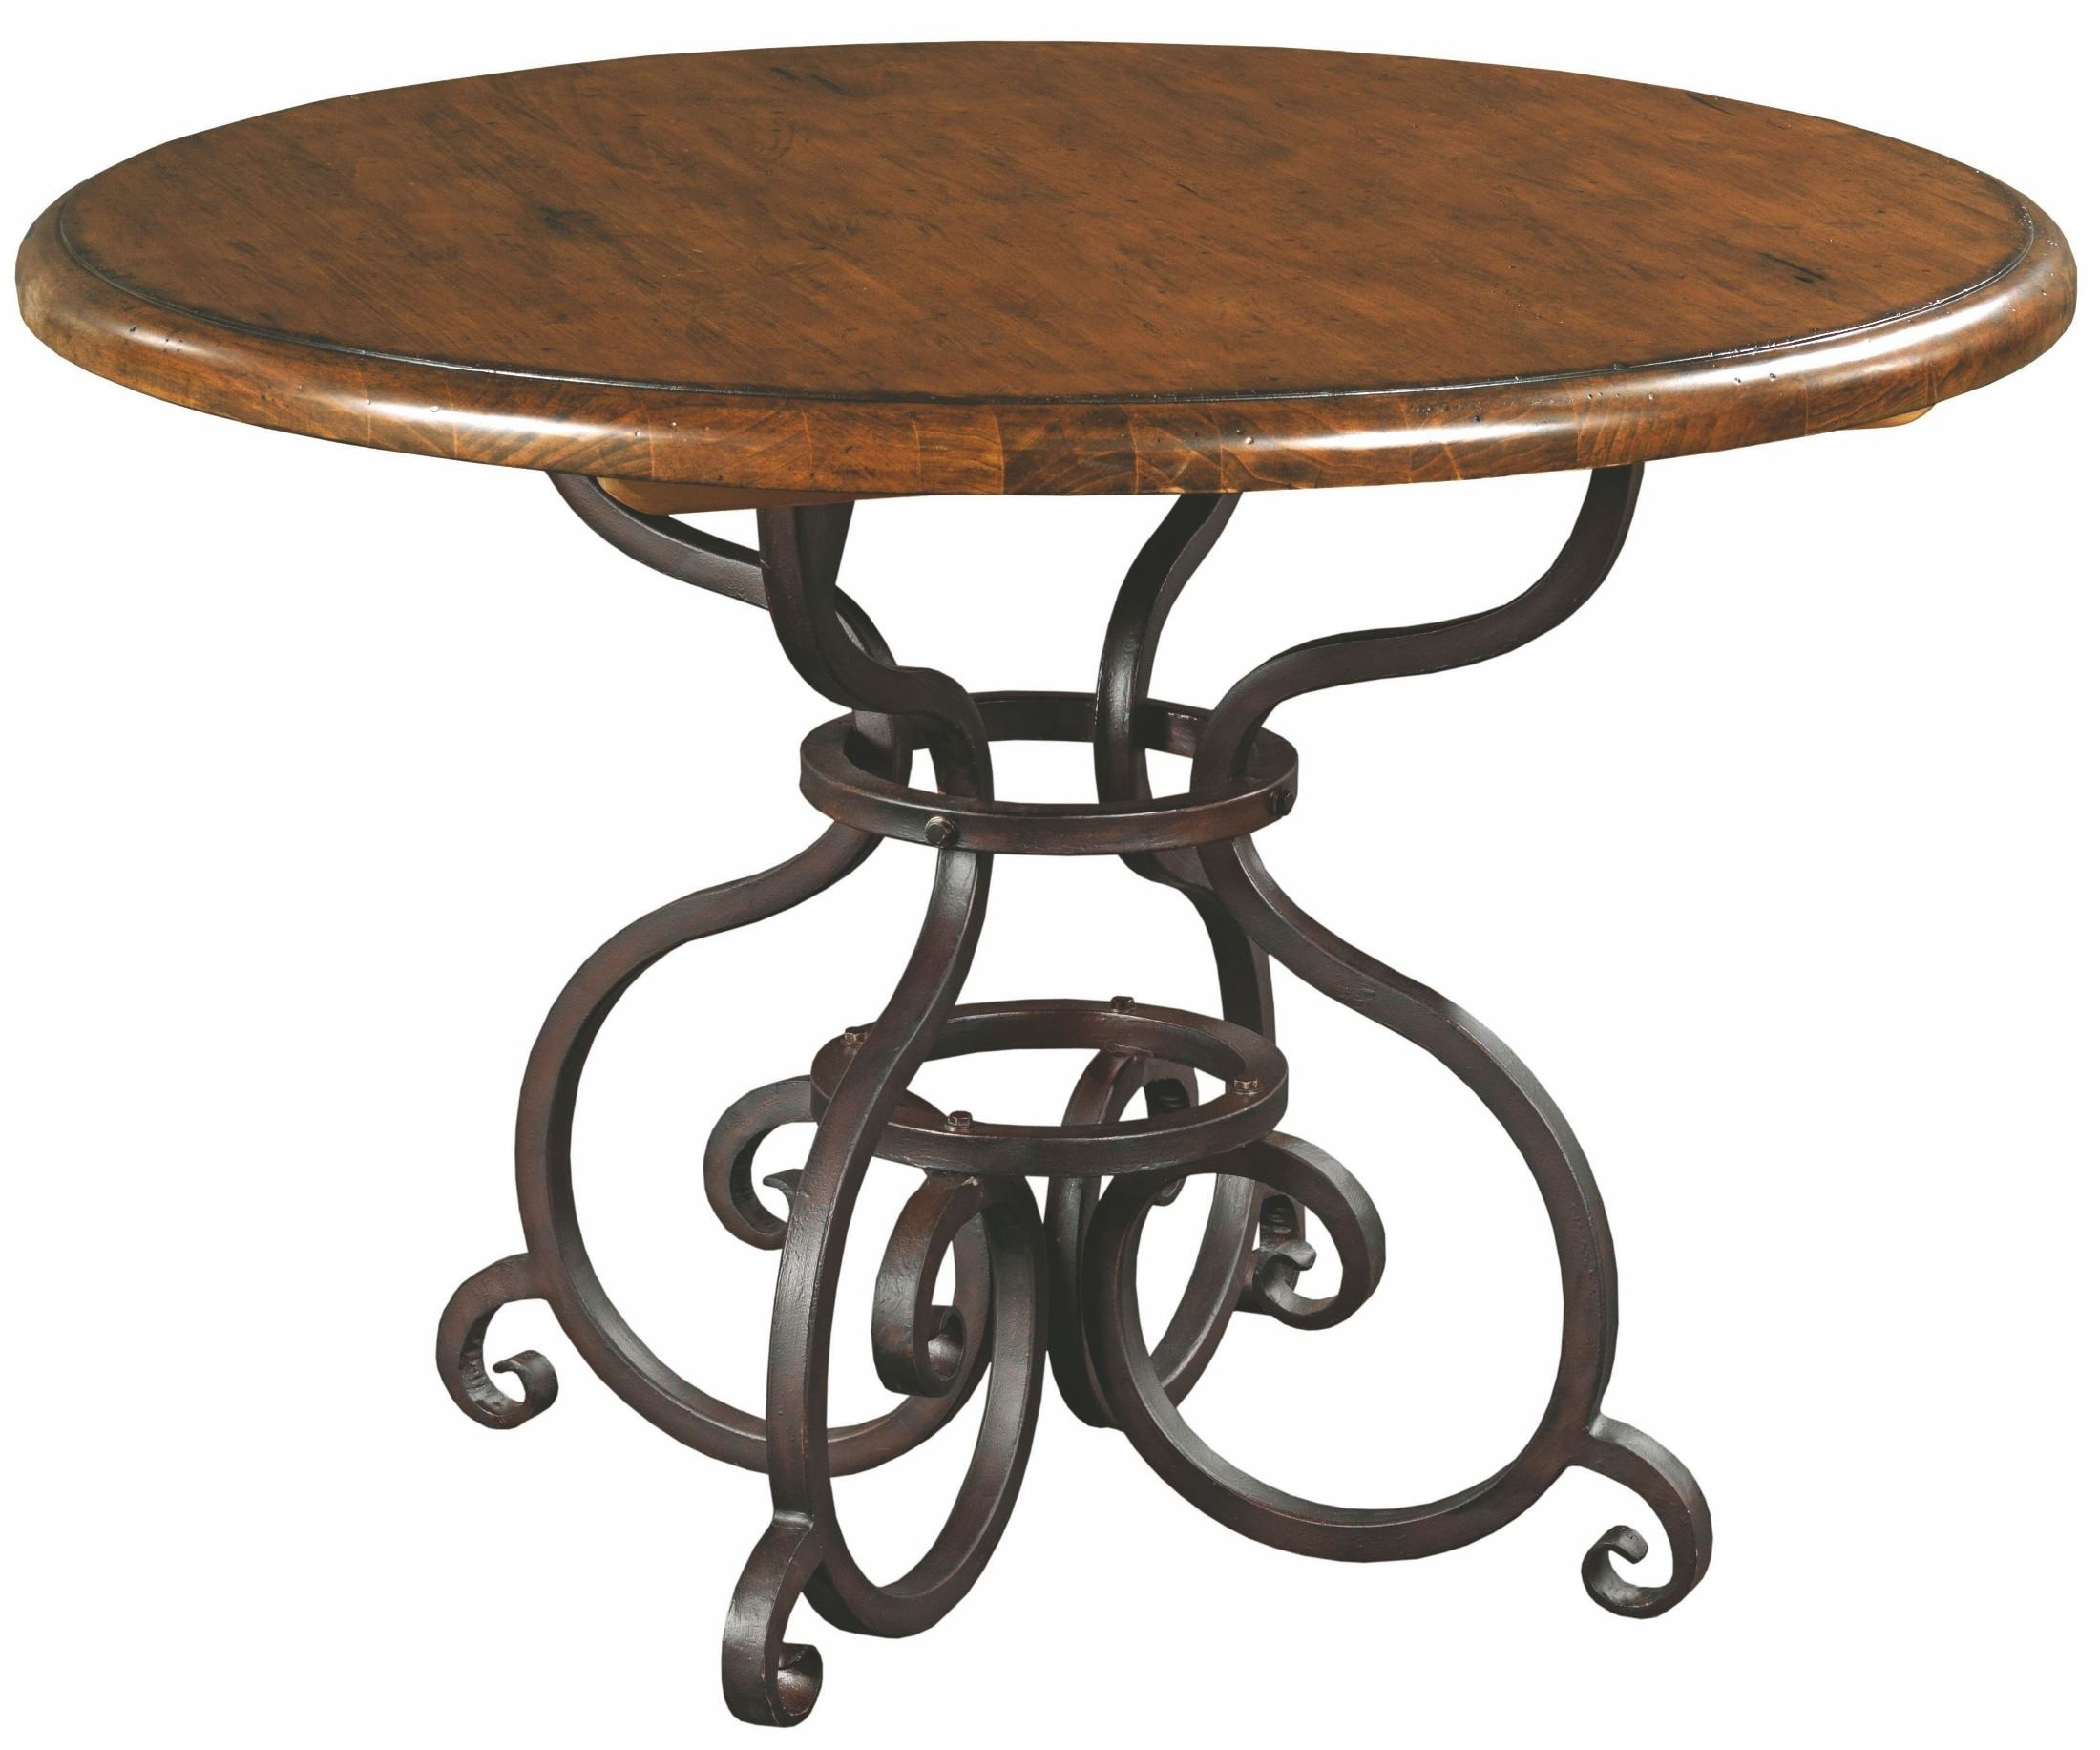 artisans shoppe 44 tobacco round dining table with metal base from kincaid 90 2155p coleman. Black Bedroom Furniture Sets. Home Design Ideas